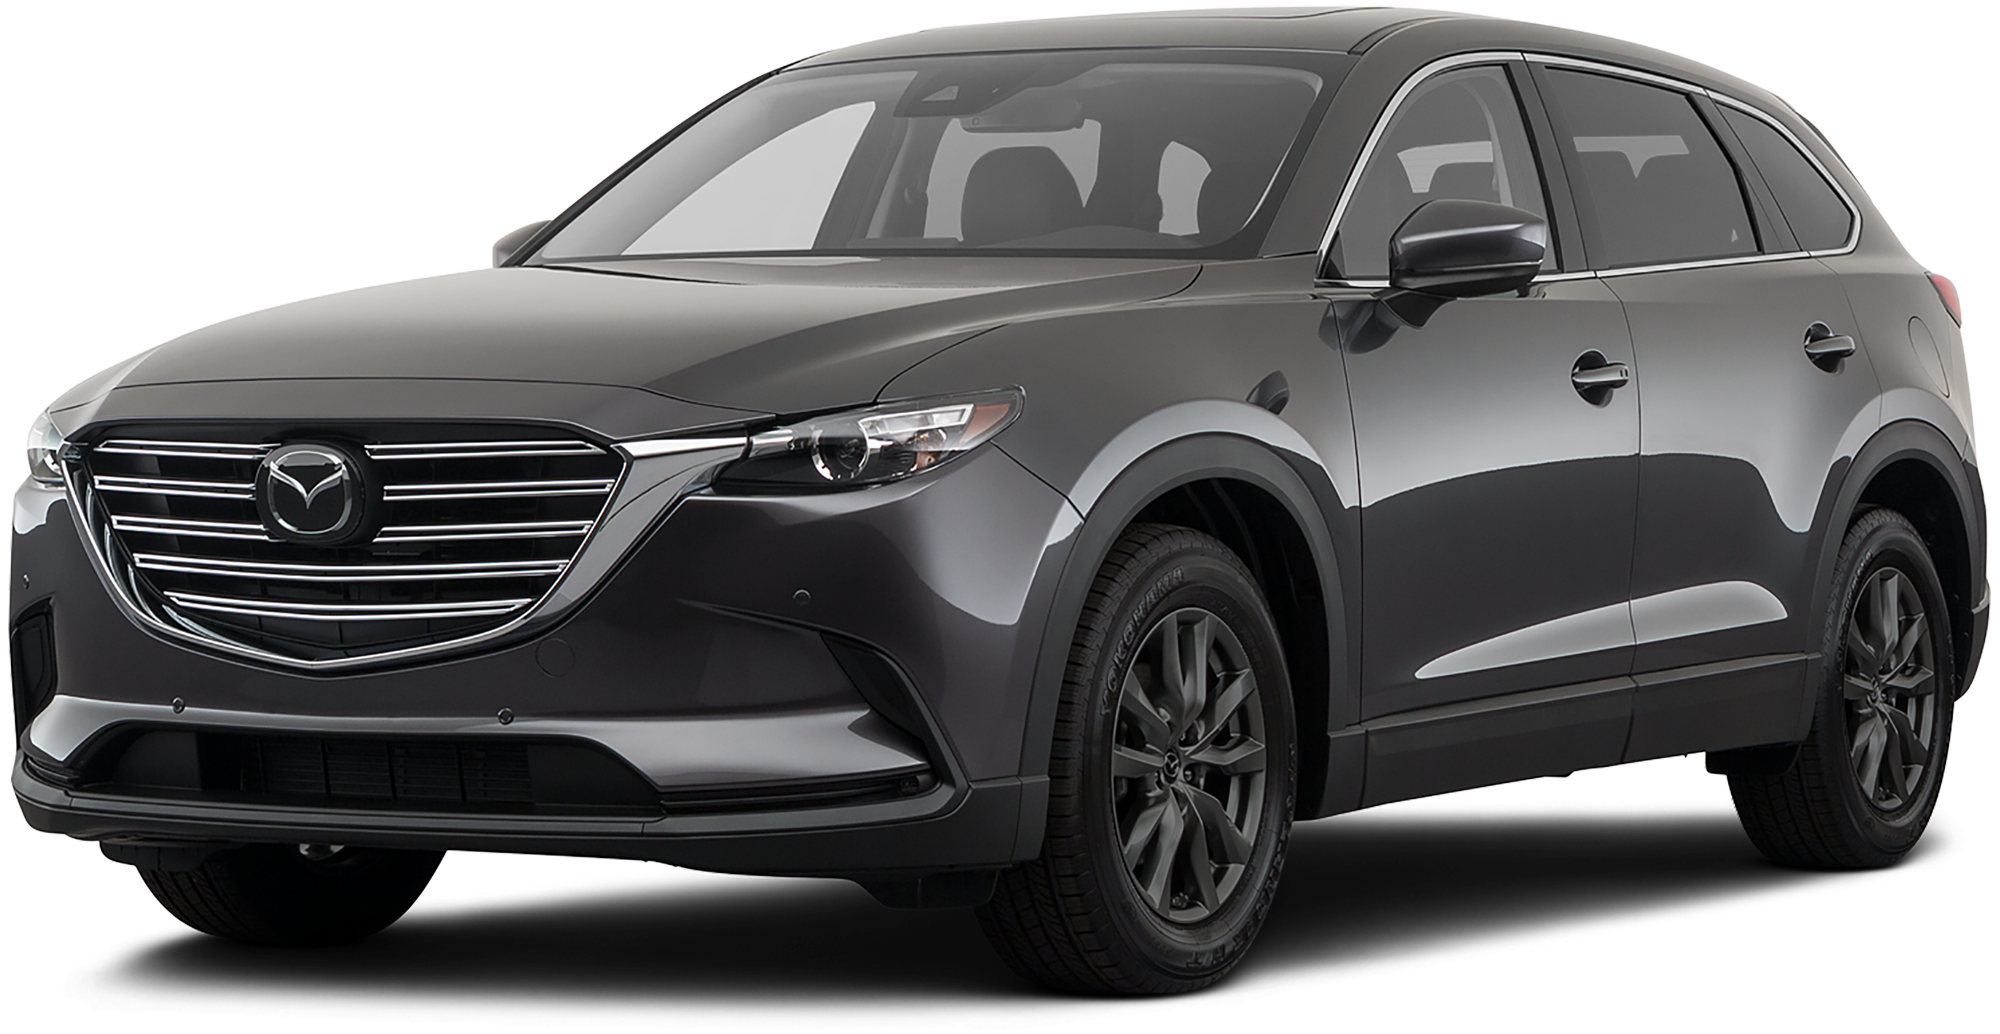 2021 Mazda Mazda CX-9 Incentives, Specials & Offers in ...